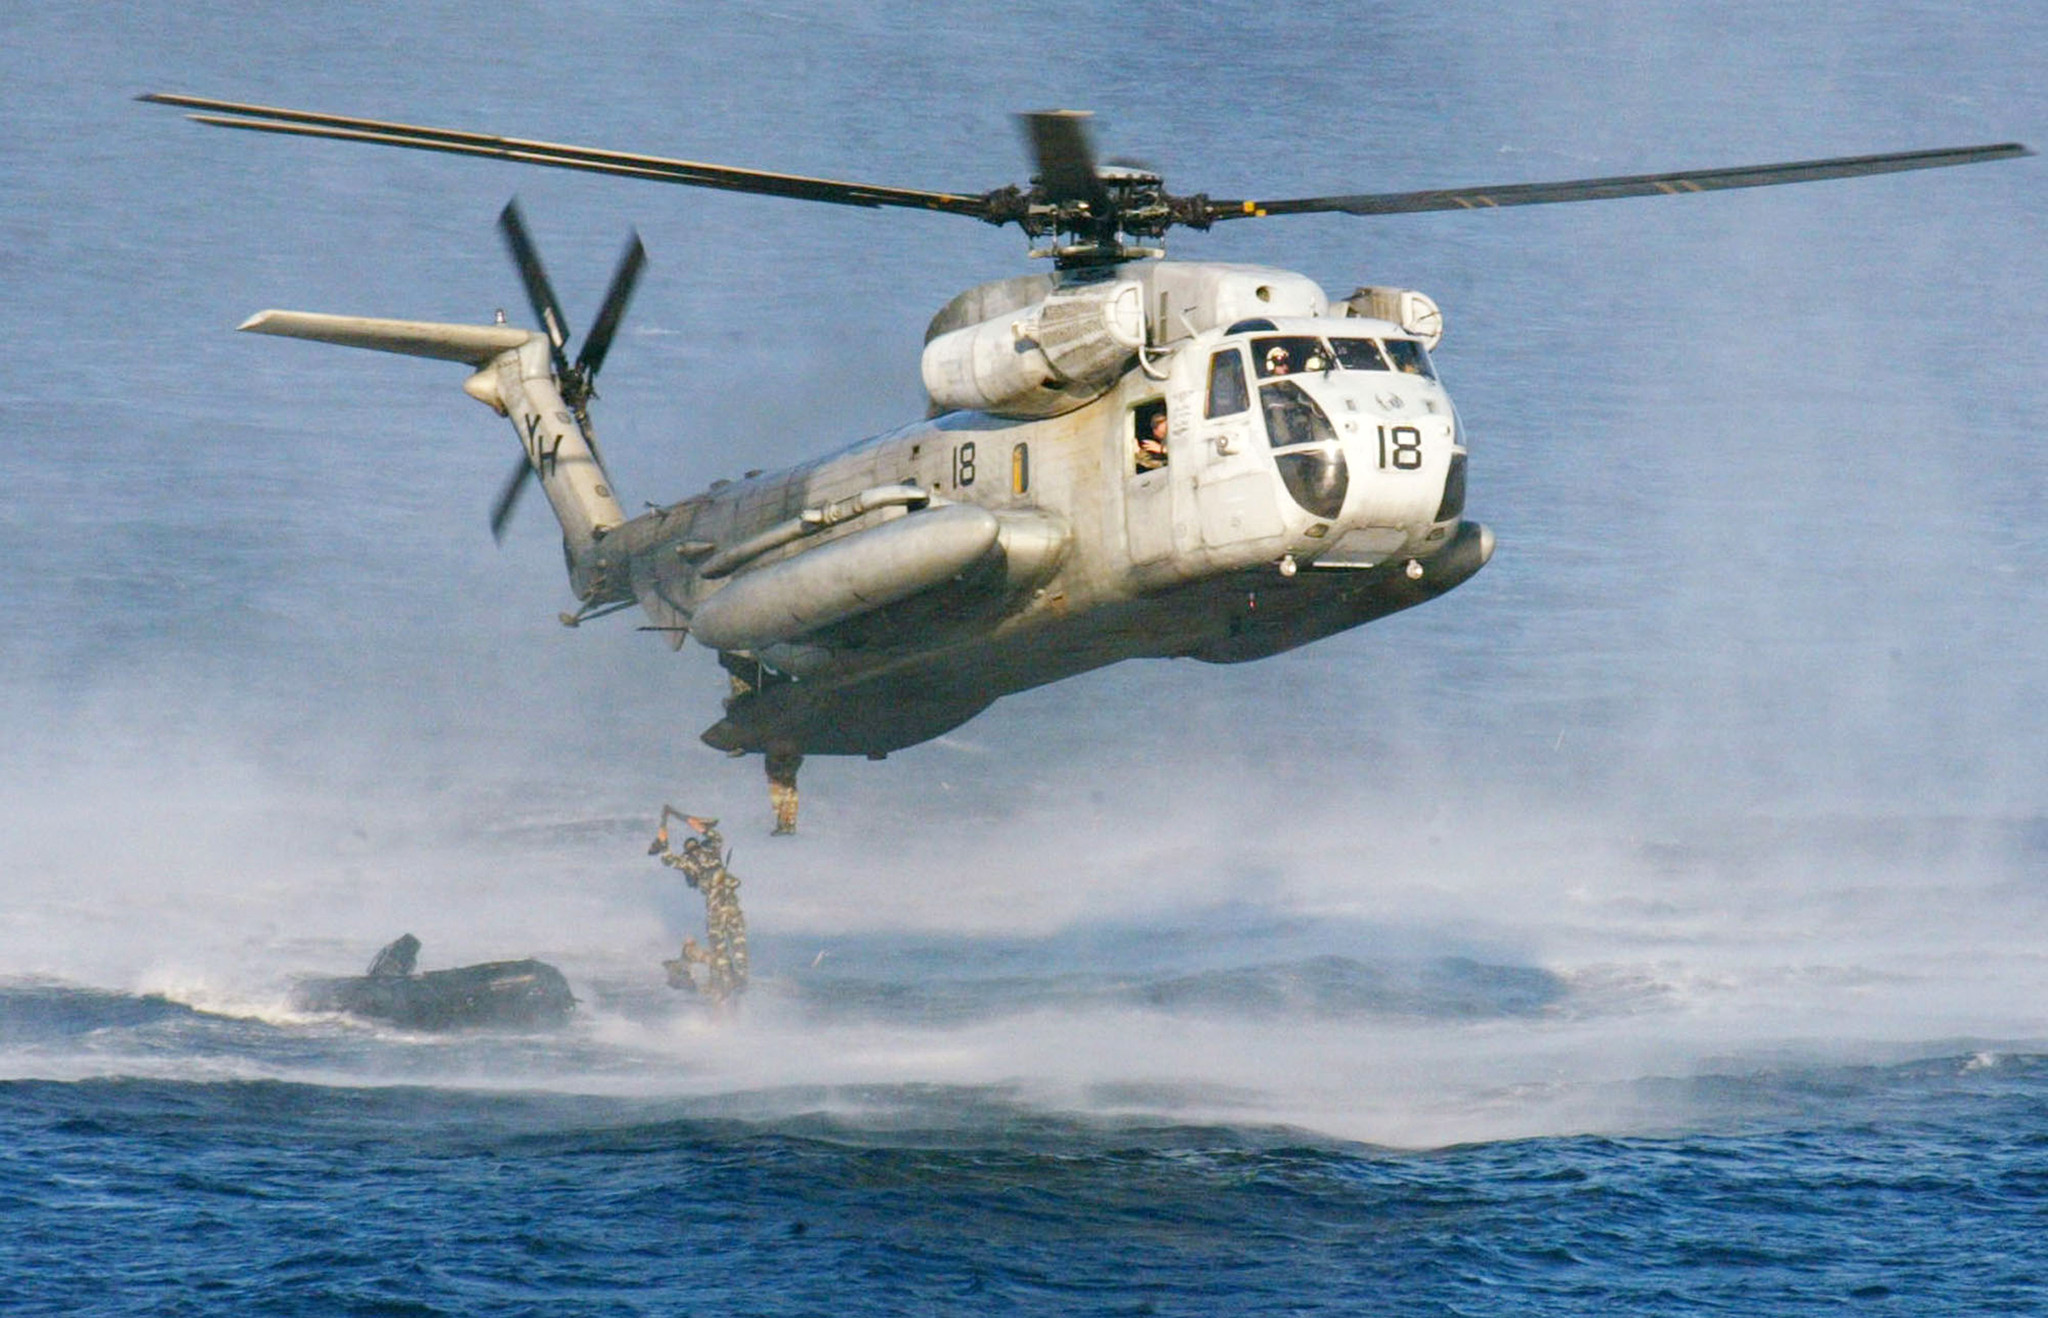 Rescuers look for 12 aboard Marine helicopters that collided off Hawaii